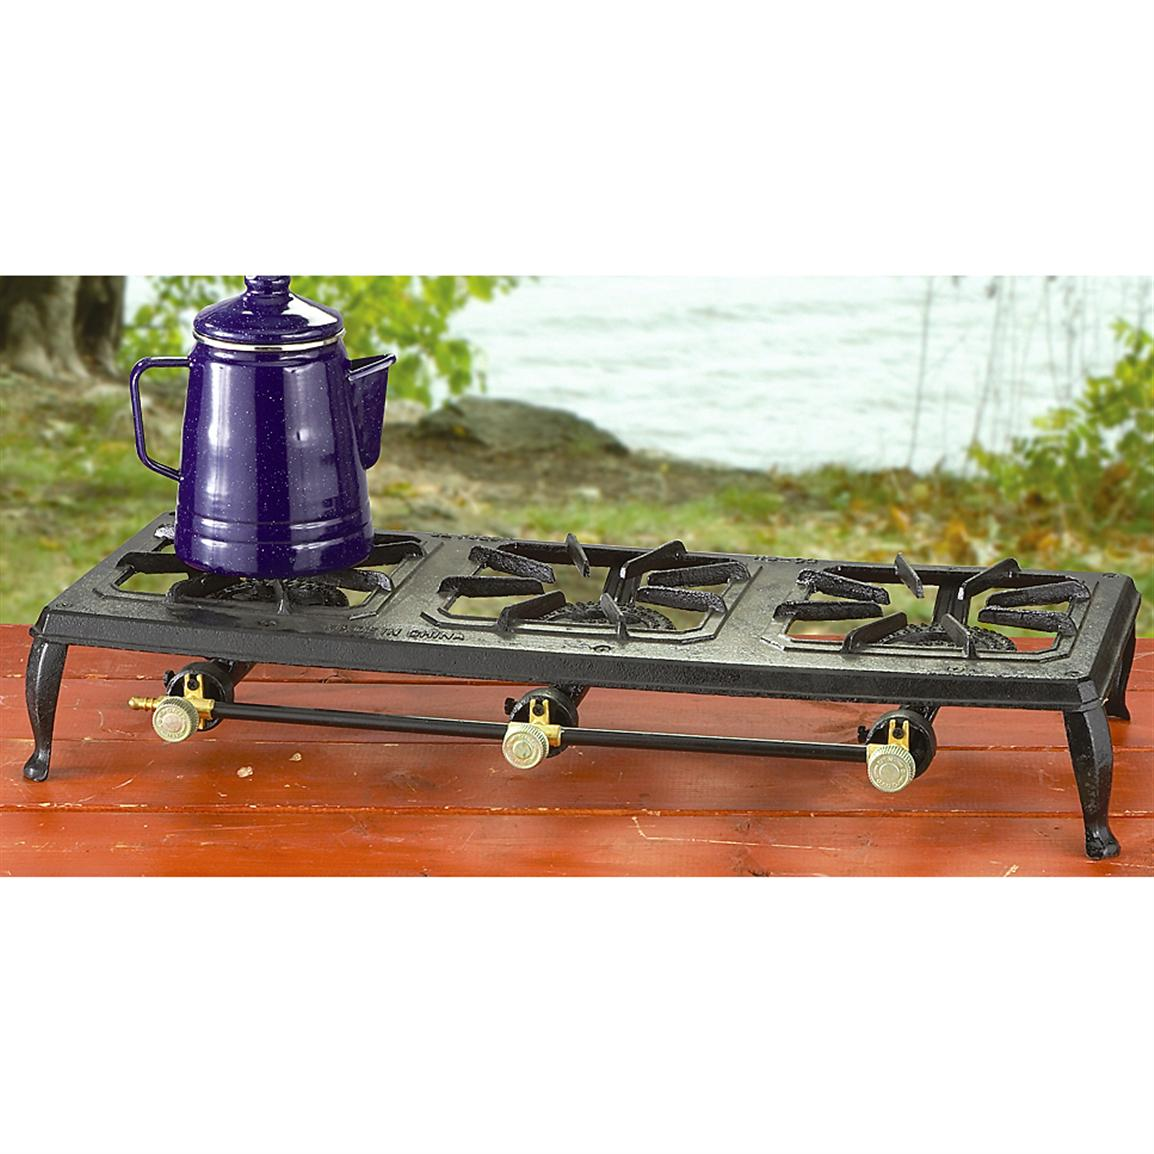 Guide Gear Triple-burner Cast Iron Stove